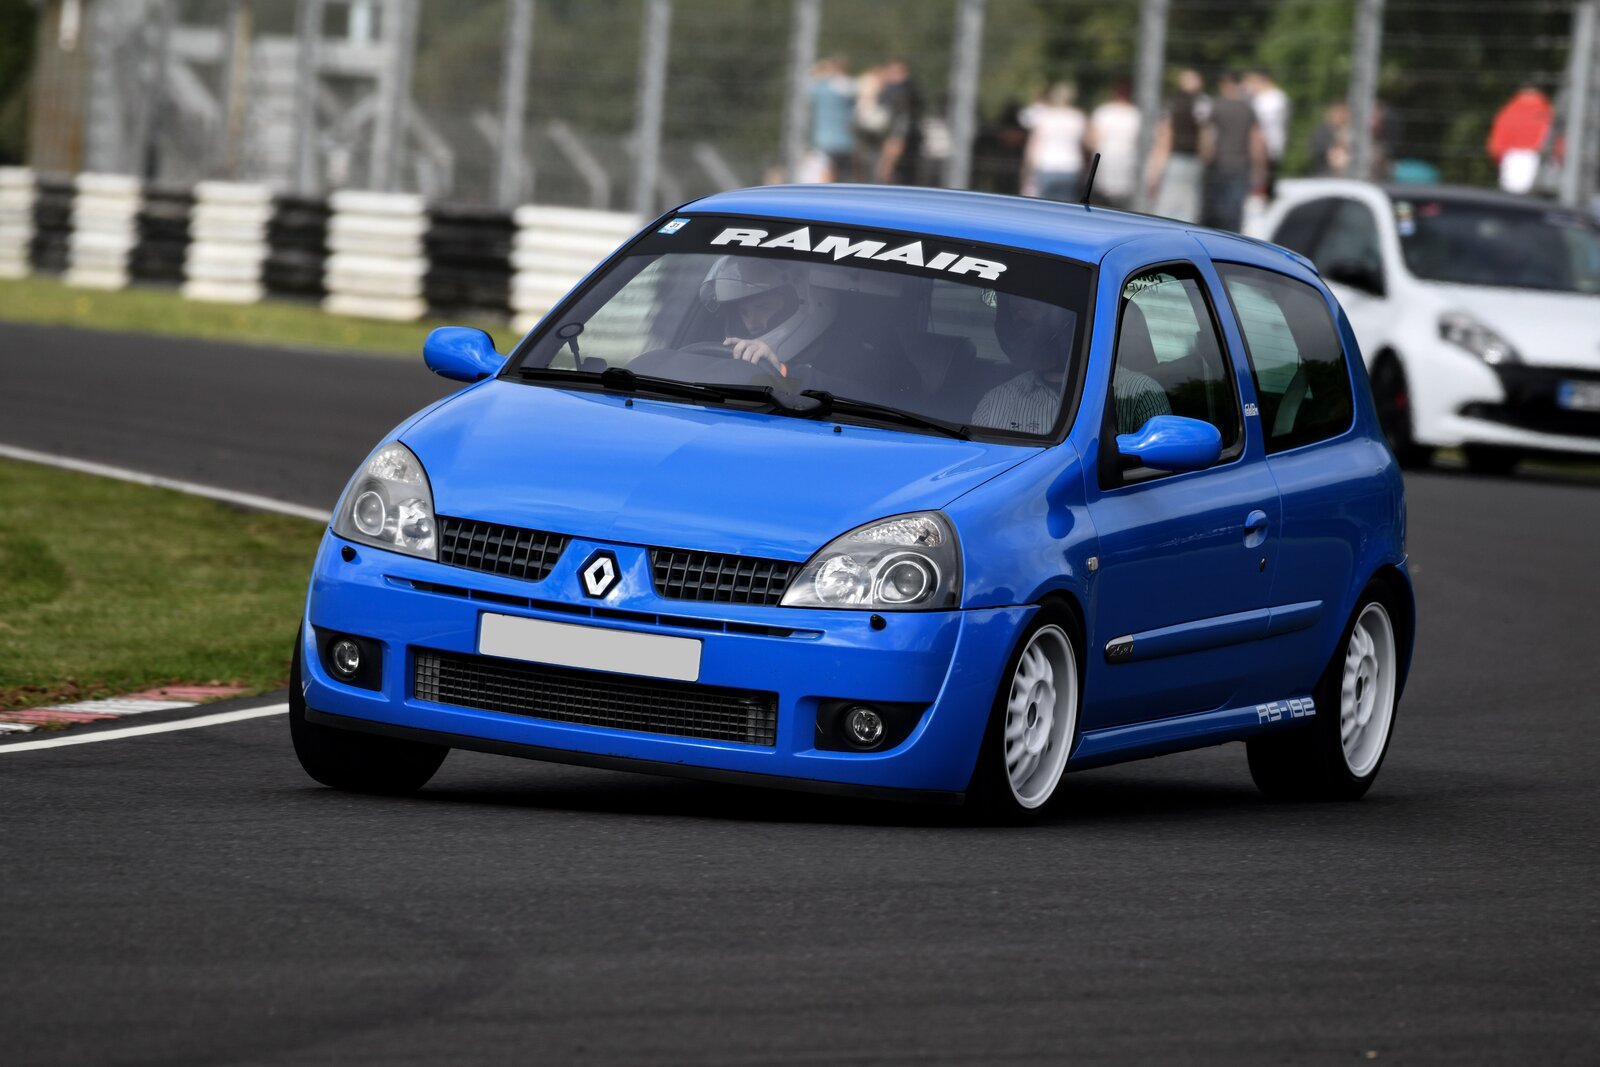 Clio @ Forge Action Combe no plate.jpg